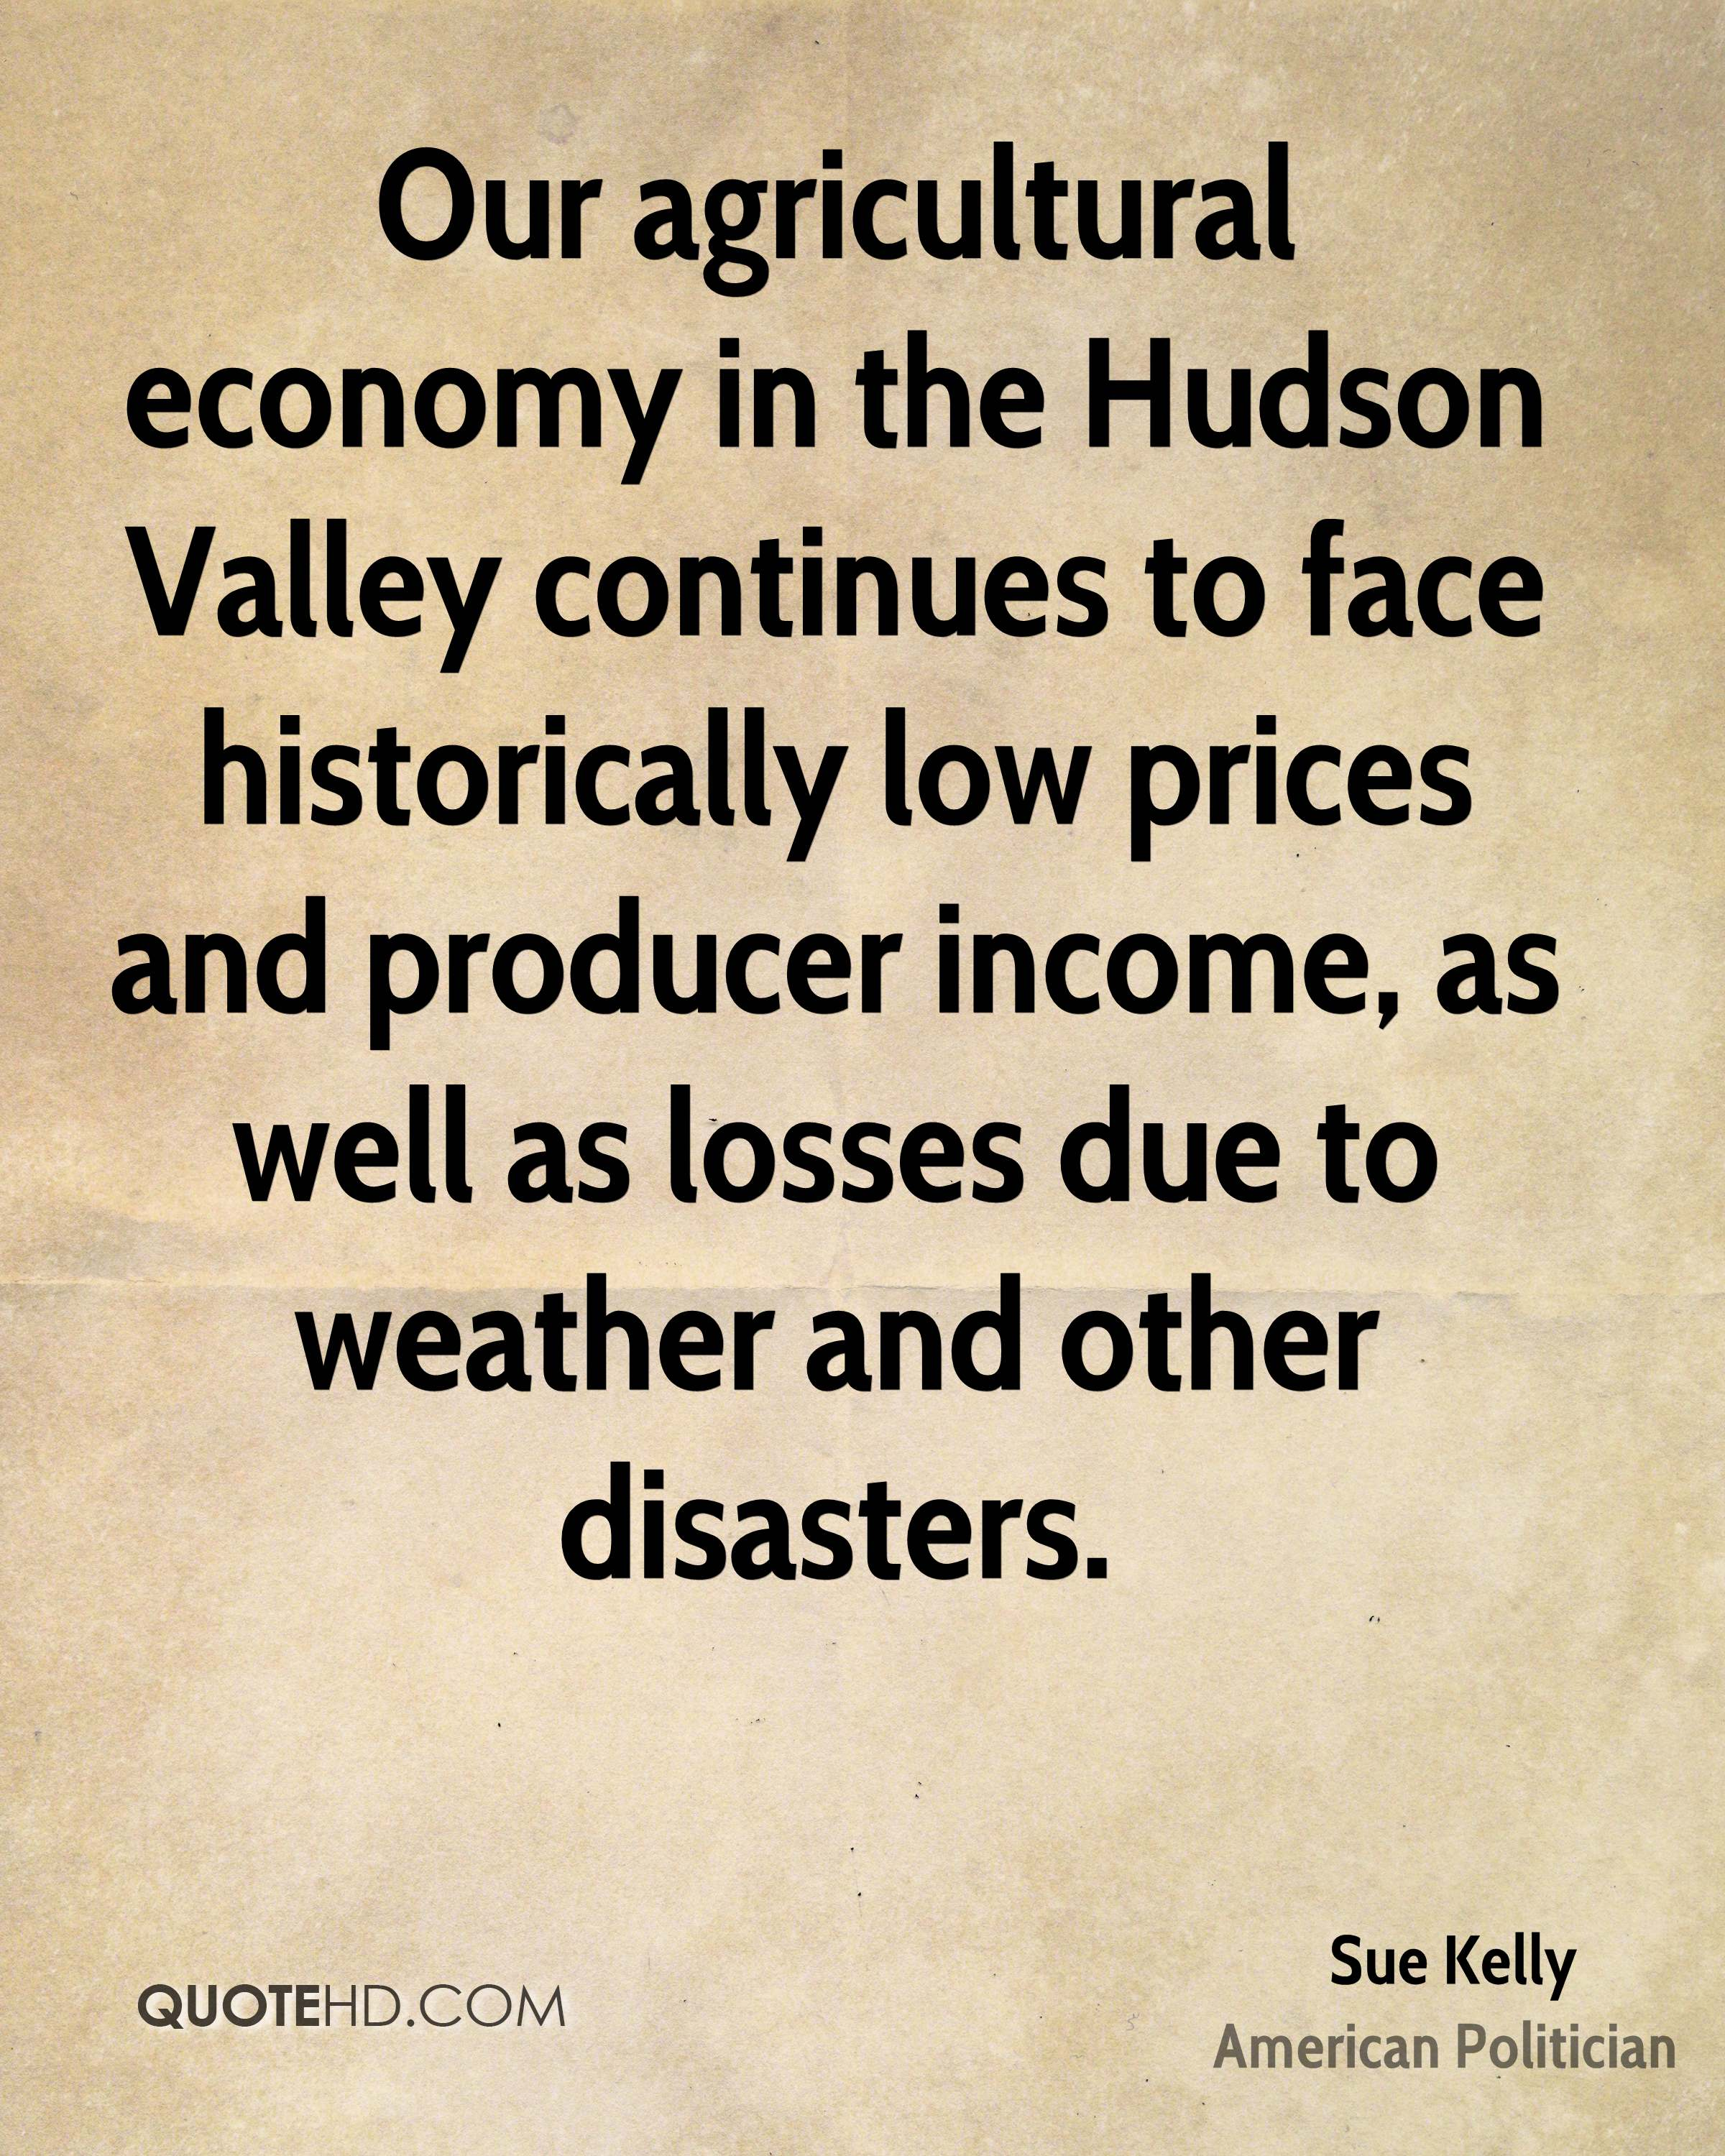 Our agricultural economy in the Hudson Valley continues to face historically low prices and producer income, as well as losses due to weather and other disasters.